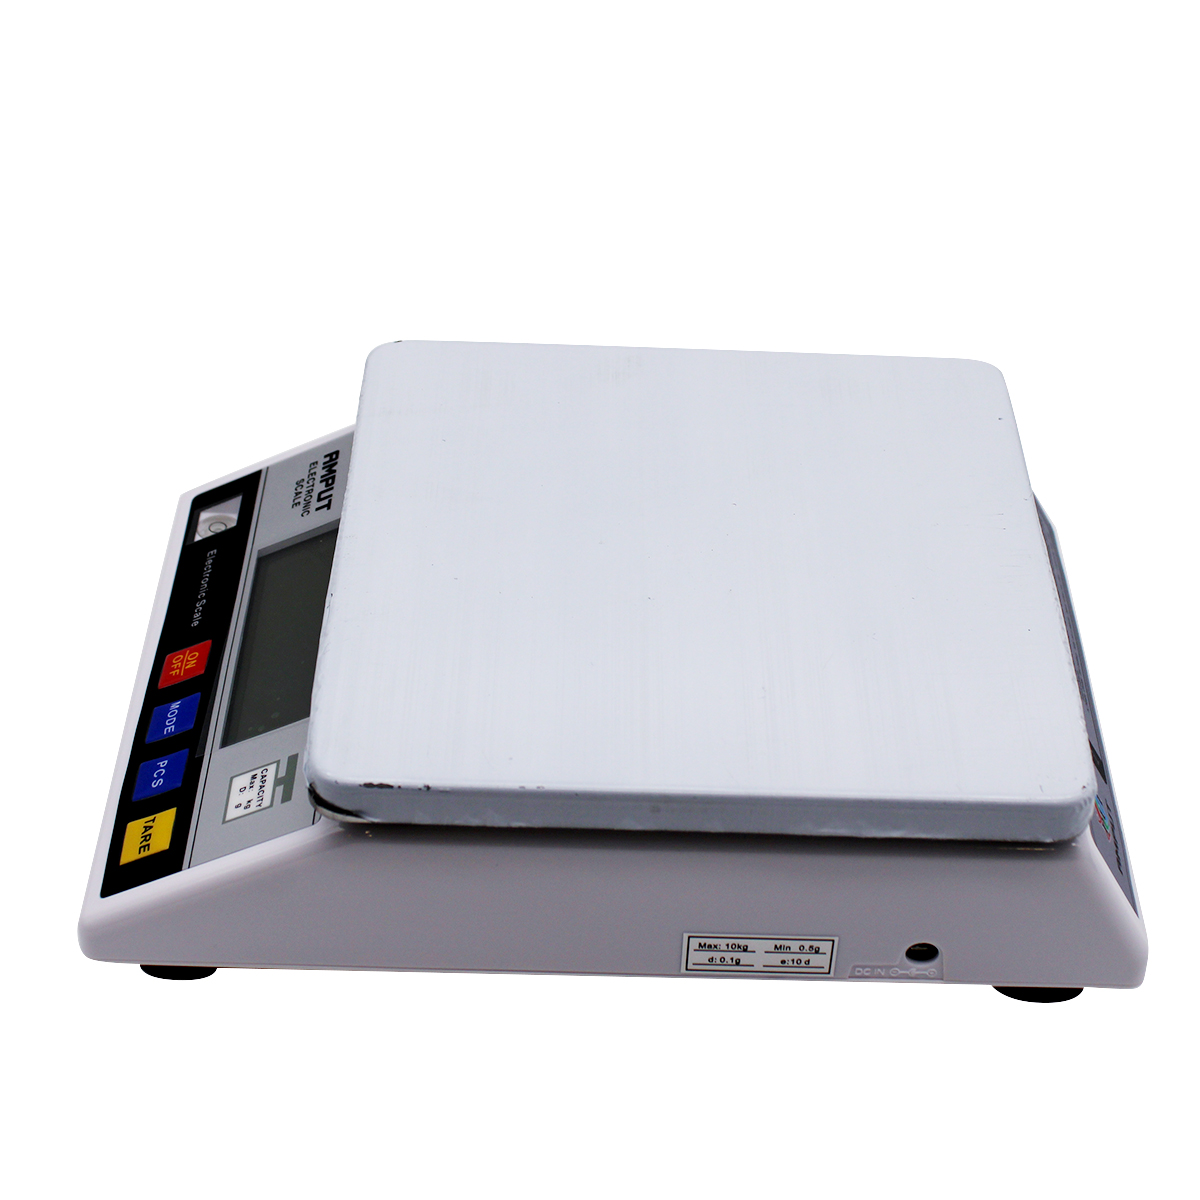 Tools : 10kg x 0 1g Digital Precision Electronic Laboratory Balance Industrial Weighing Scale Balance w  Counting Table Top Scale